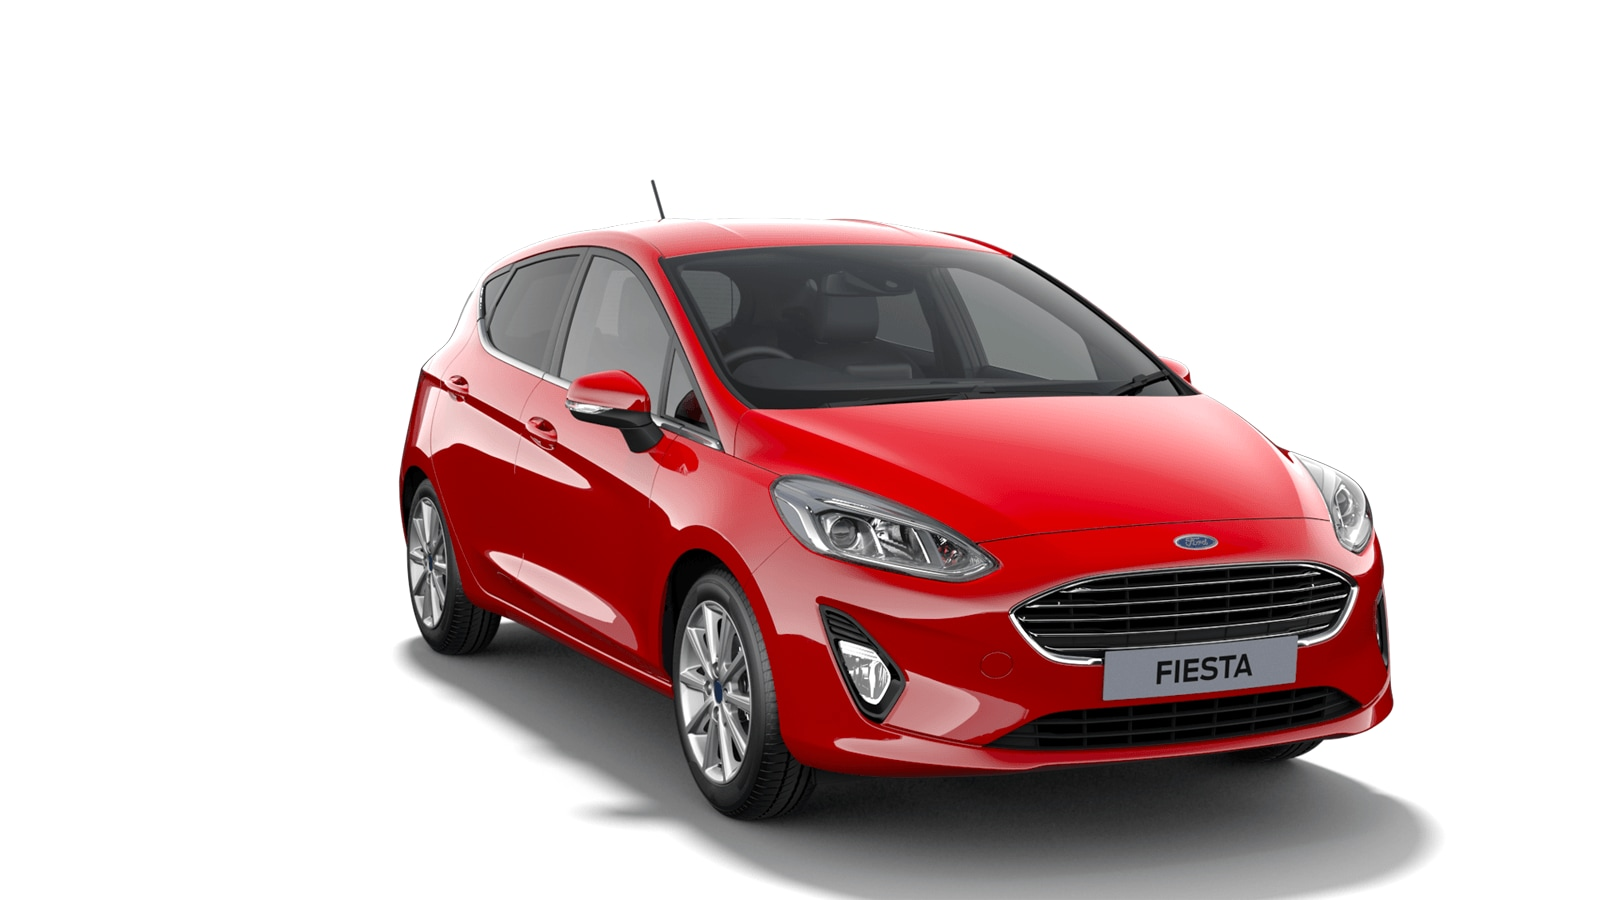 Ford Fiesta Titanium 1.0L EcoBoost 125PS at RGR Garages